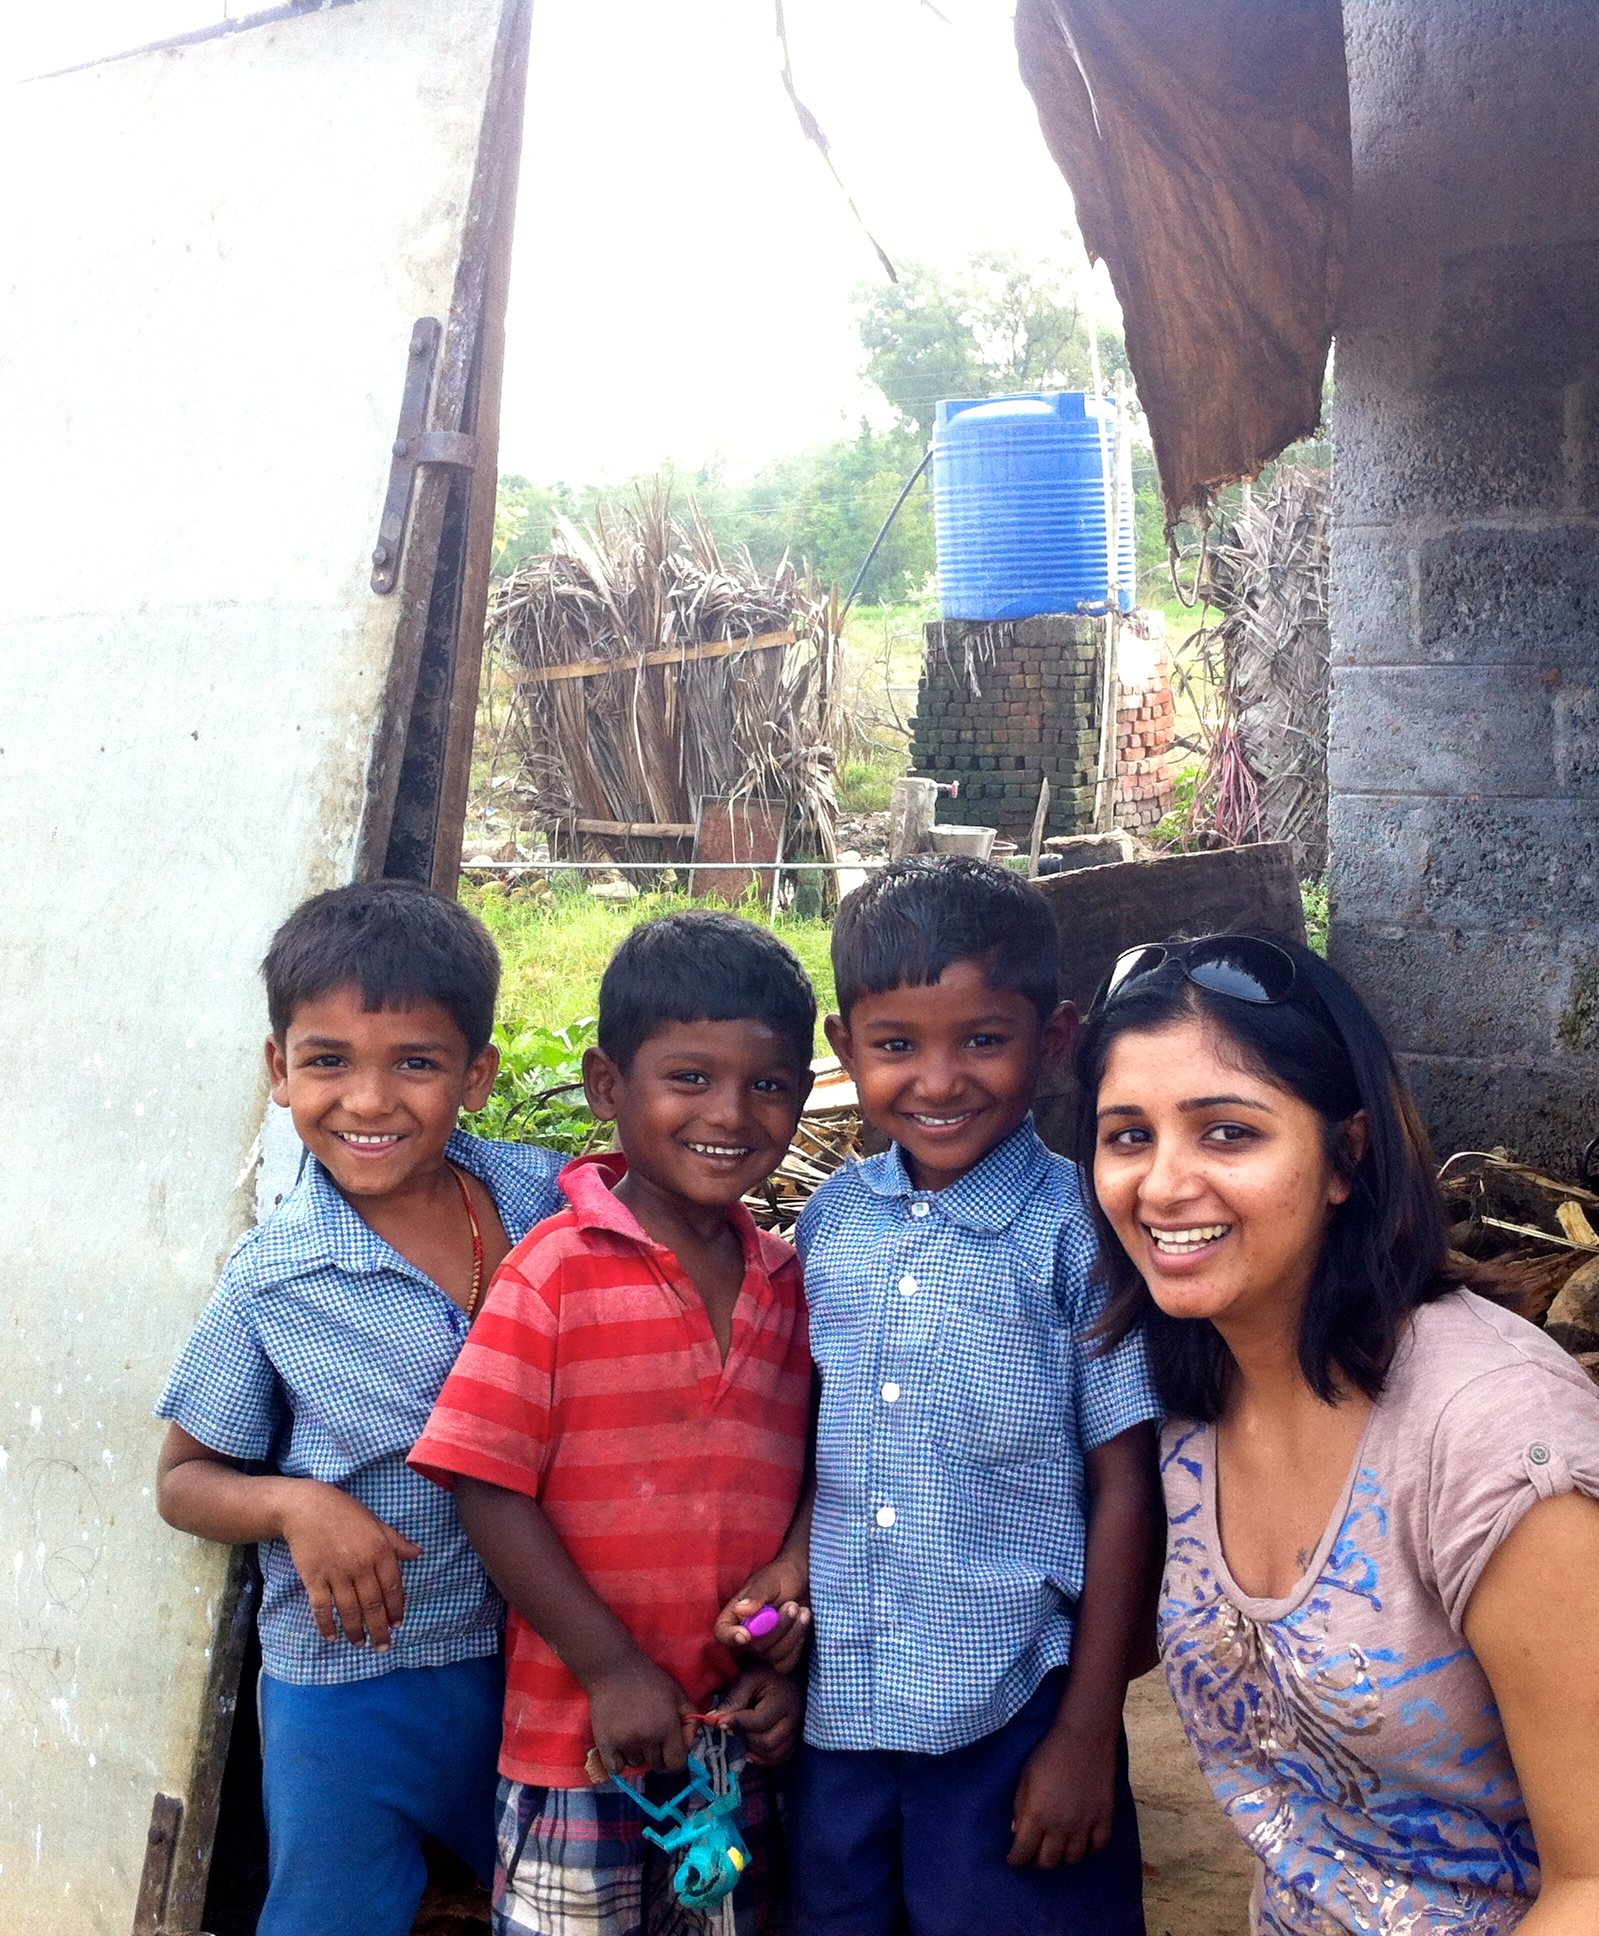 My cousin Nithya and these wonderful kids